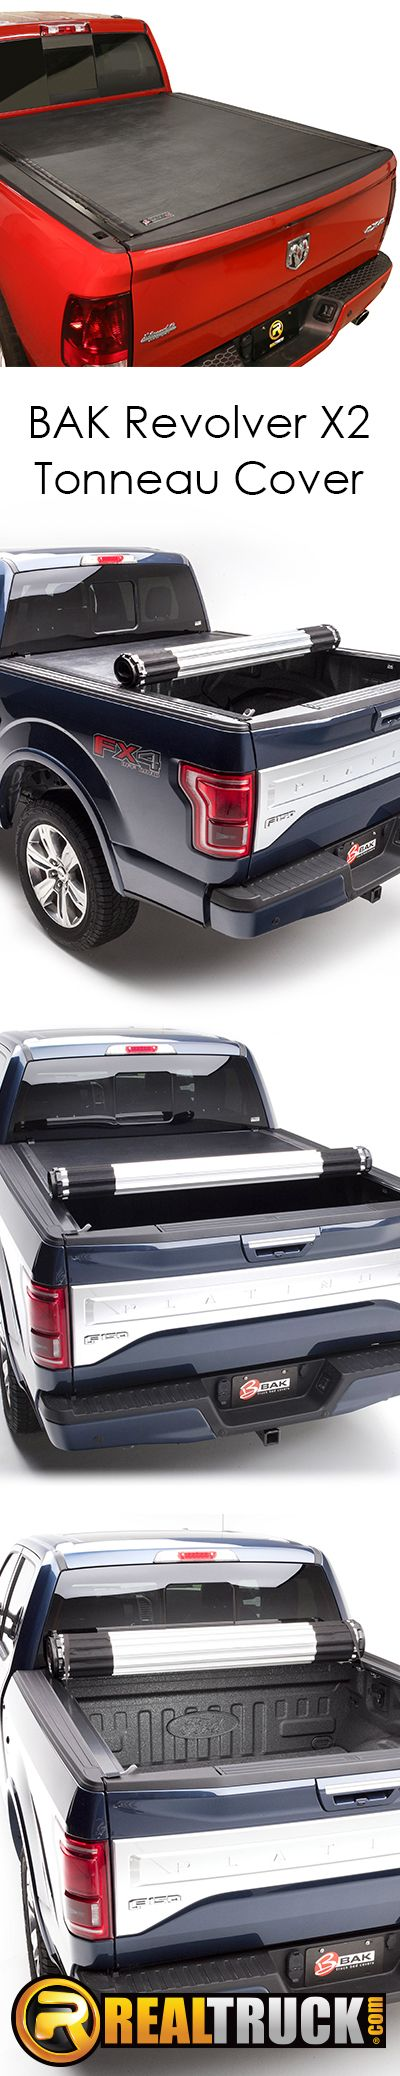 Best 25 hard truck bed covers ideas on pinterest truck bed covers bed covers for trucks and pickup truck bed covers